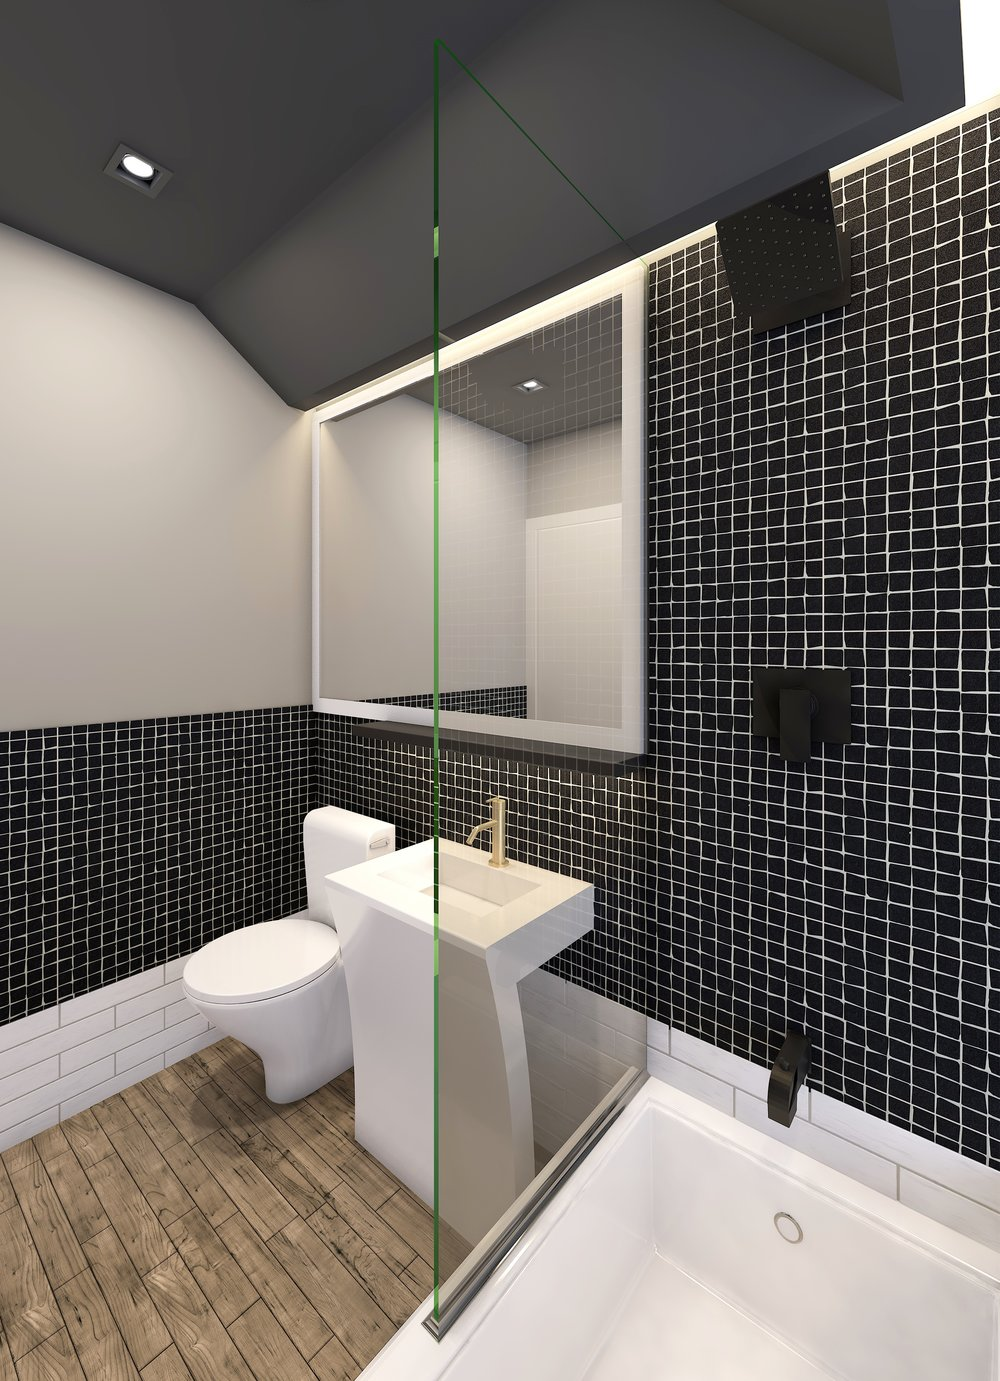 688-690 Bathroom Draft 6.25.15 veiw 2.jpg